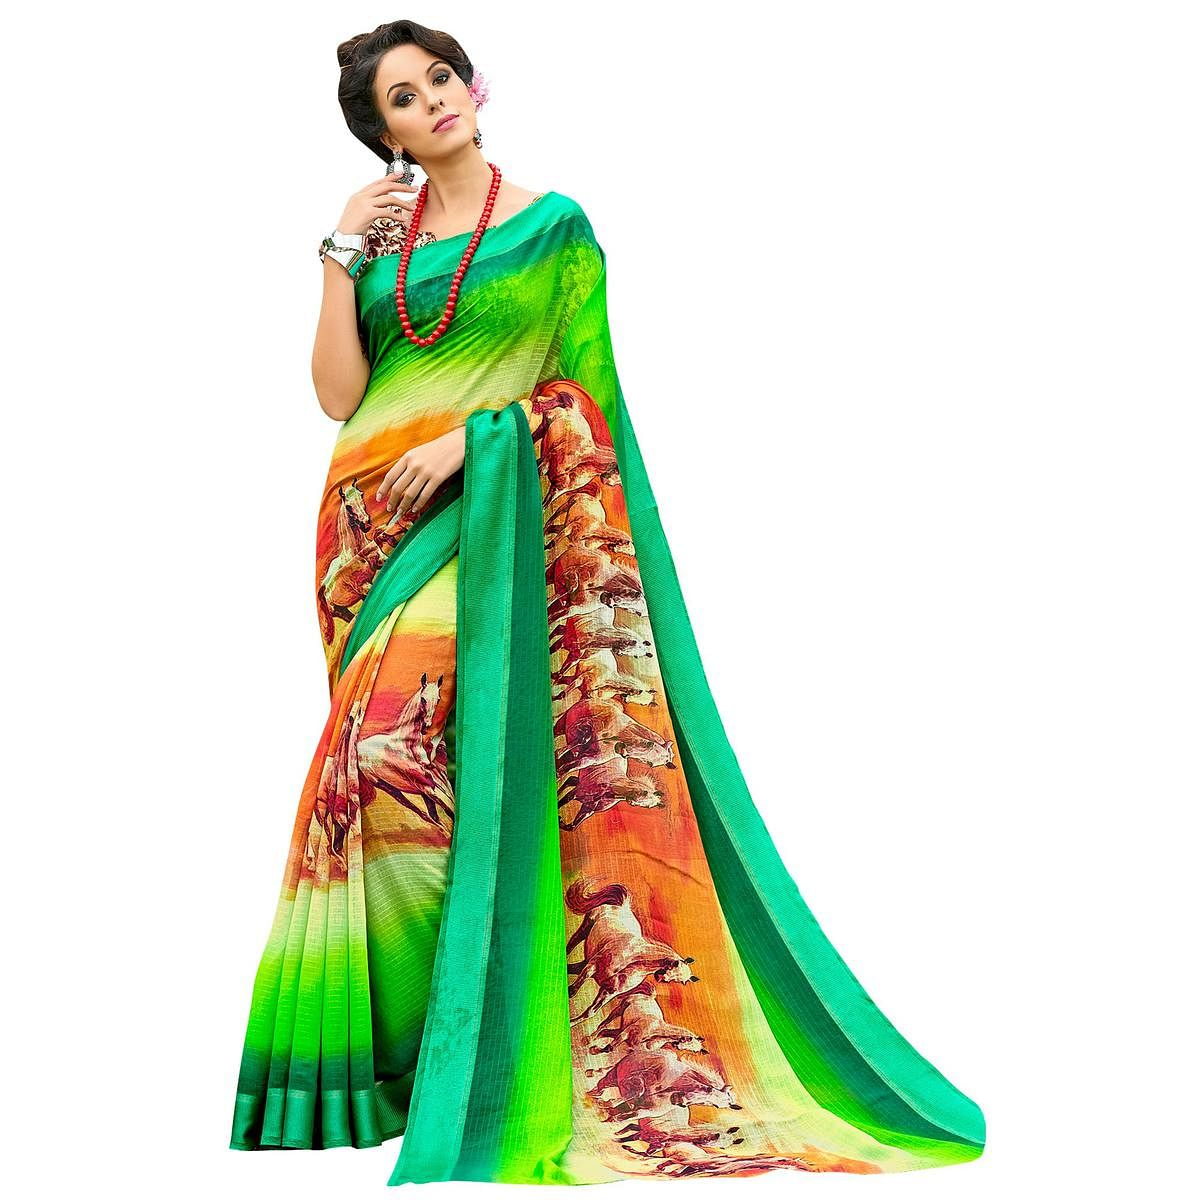 Irresistible Green-Multi Colored Partywear Digital Printed Chanderi Silk Saree